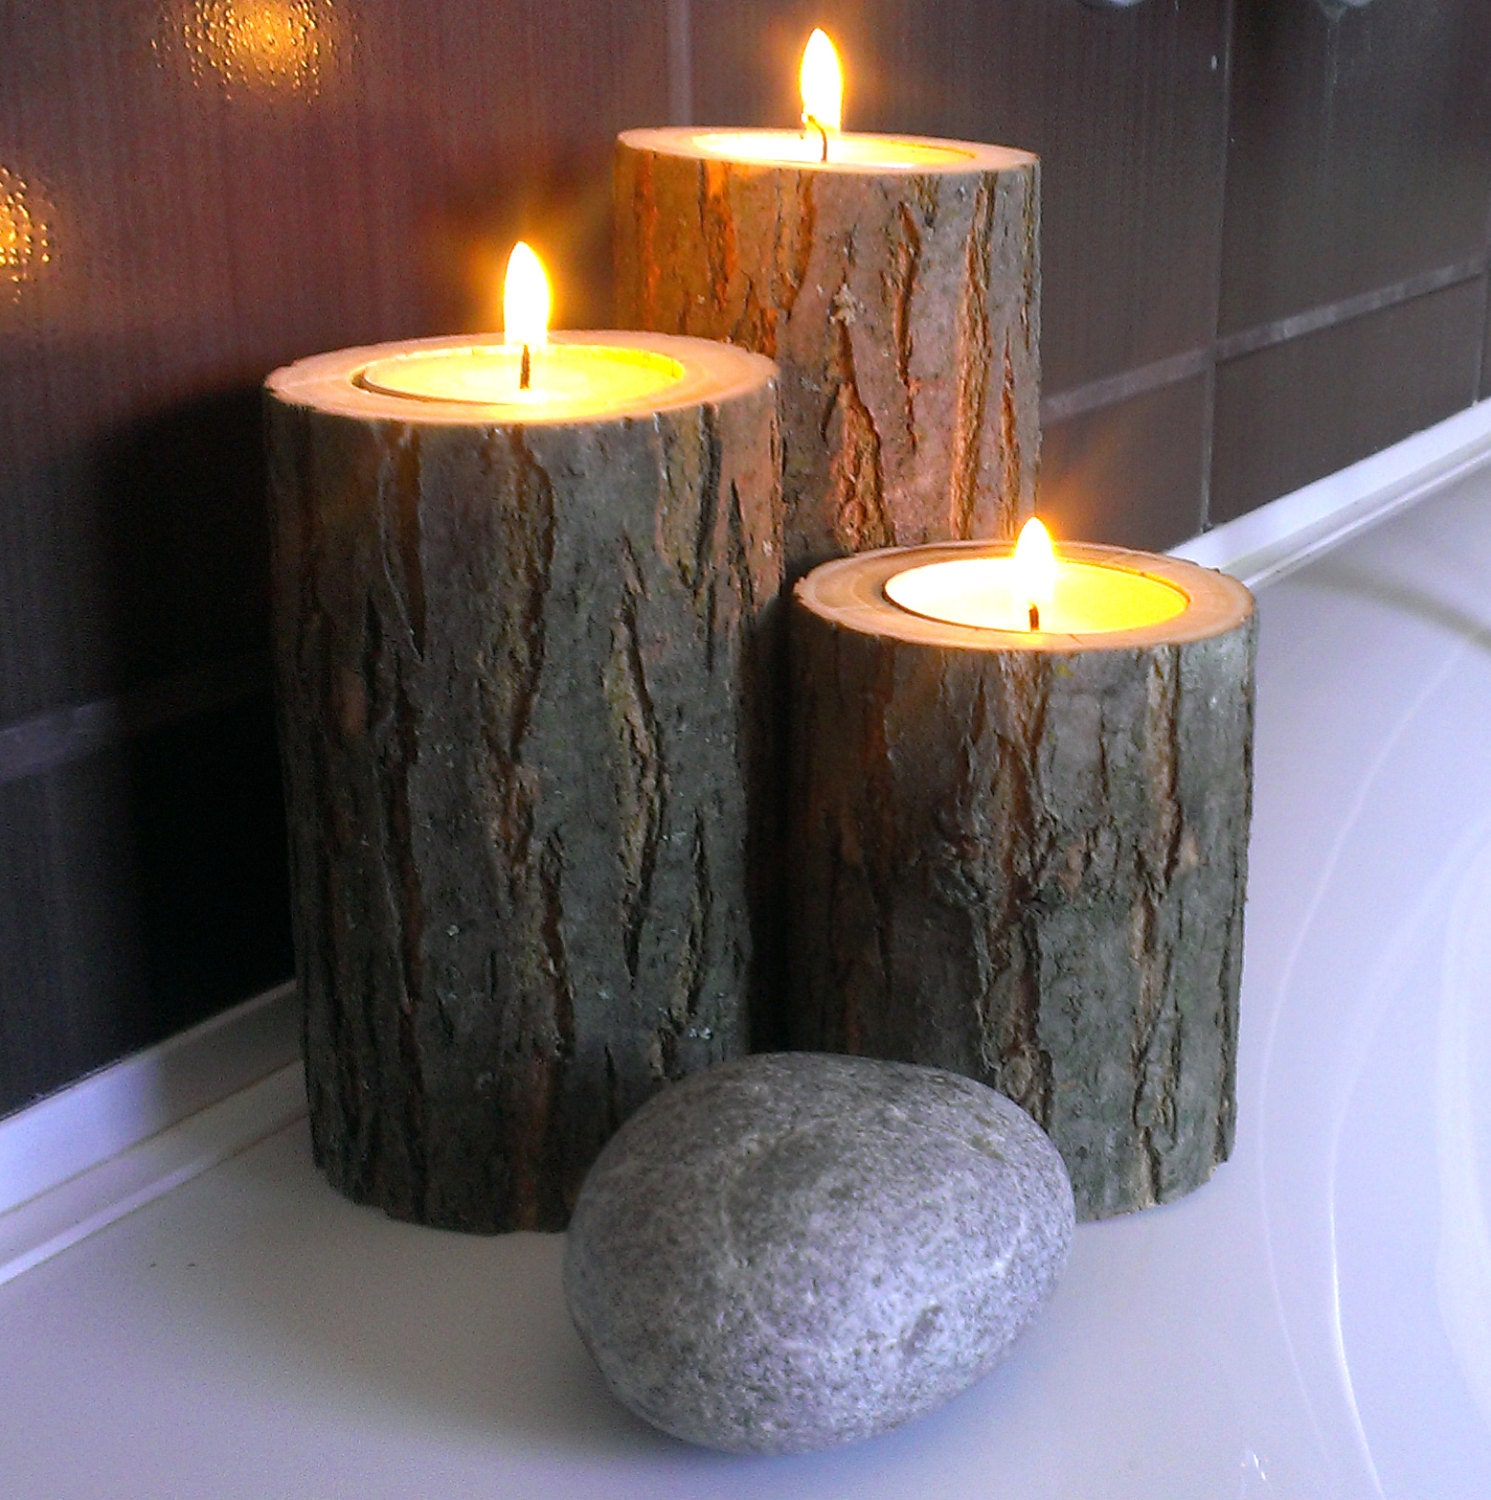 Acacia tree branch candle holders bath decor tea light for Bathroom decor with candles